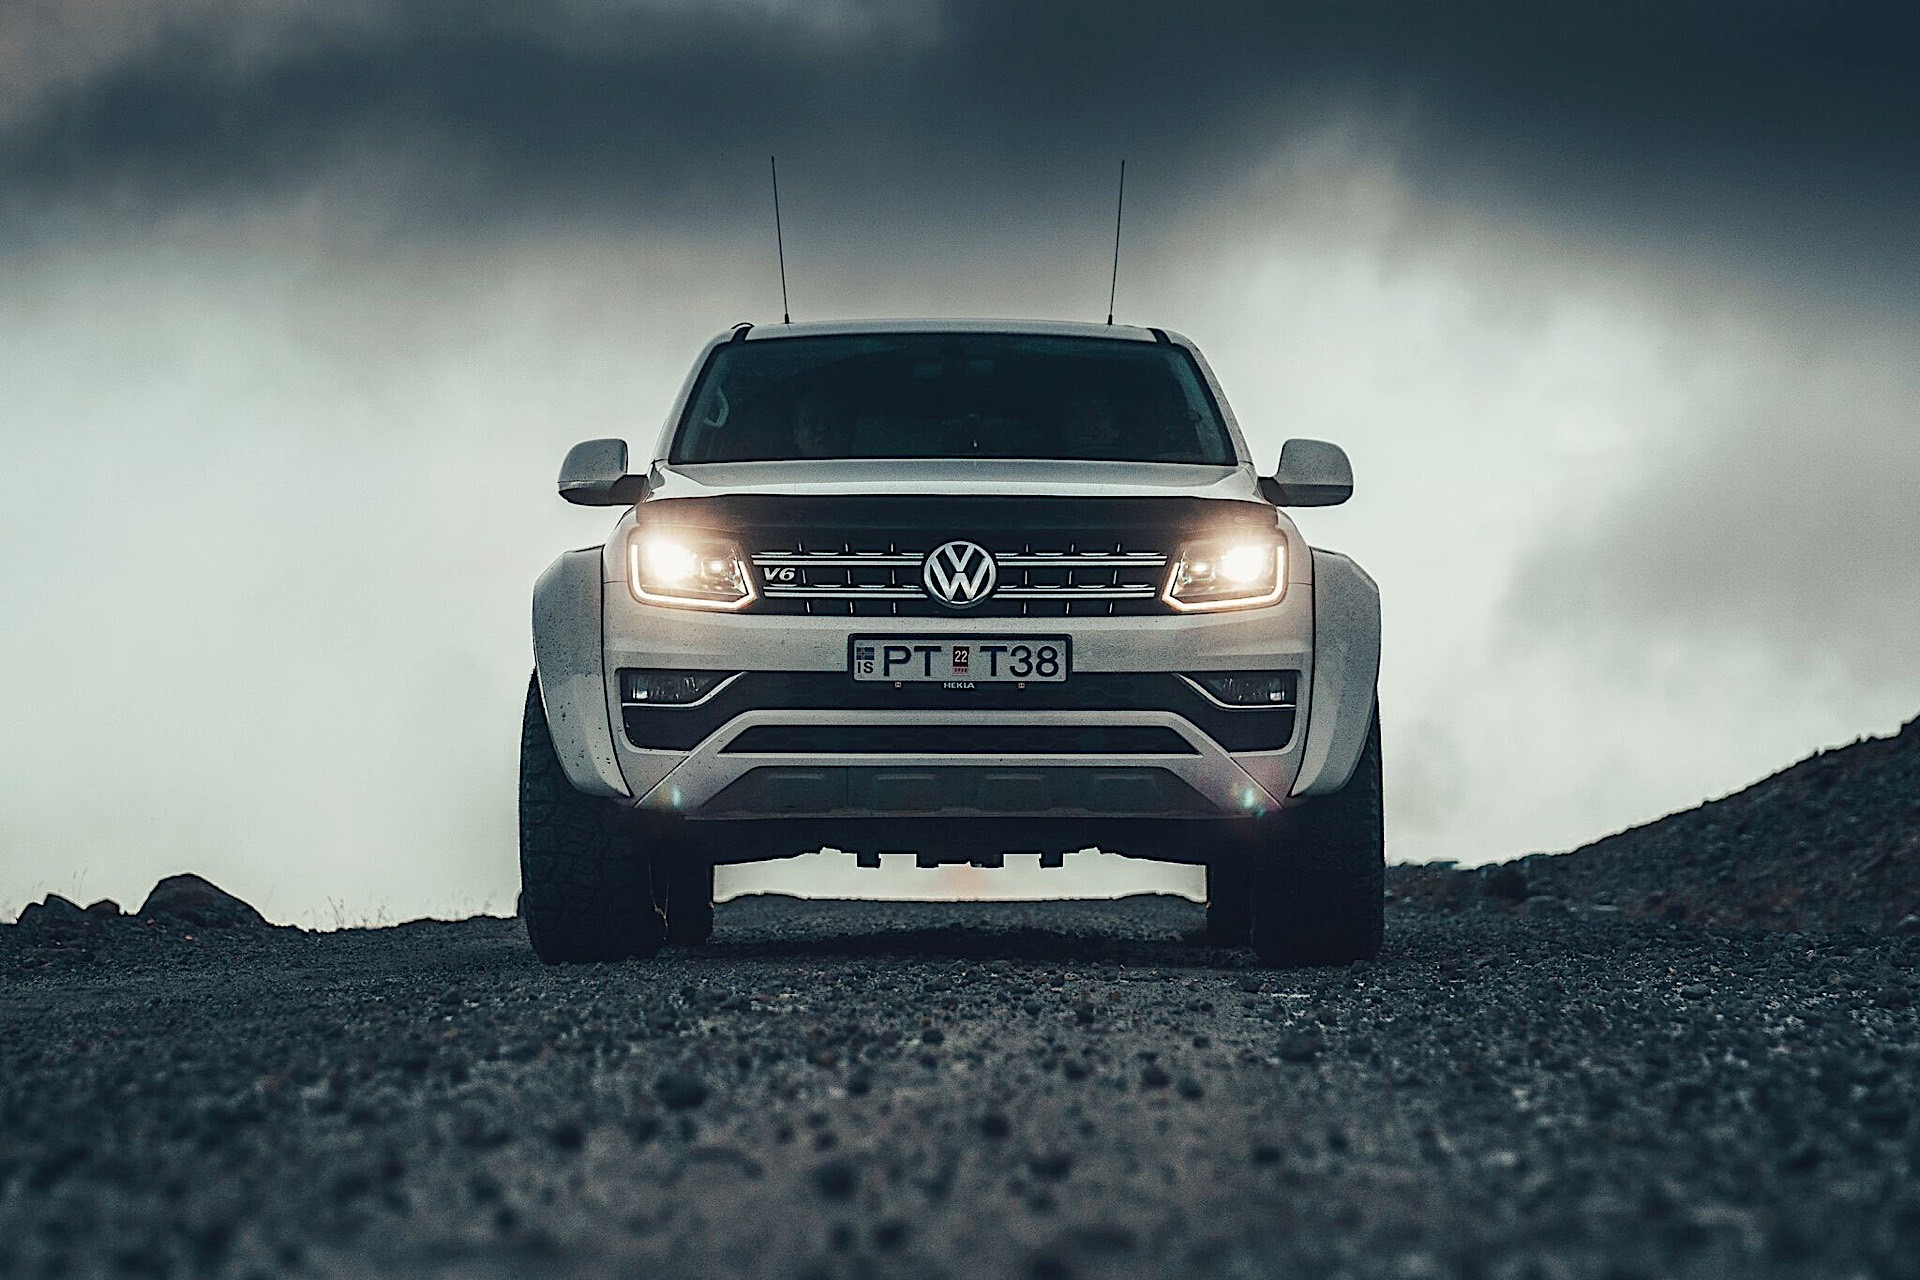 Drive Now Truck Sales >> Volkswagen Amarok AT35 by Arctic Trucks Is the Preeminent Polar Explorer - The Drive